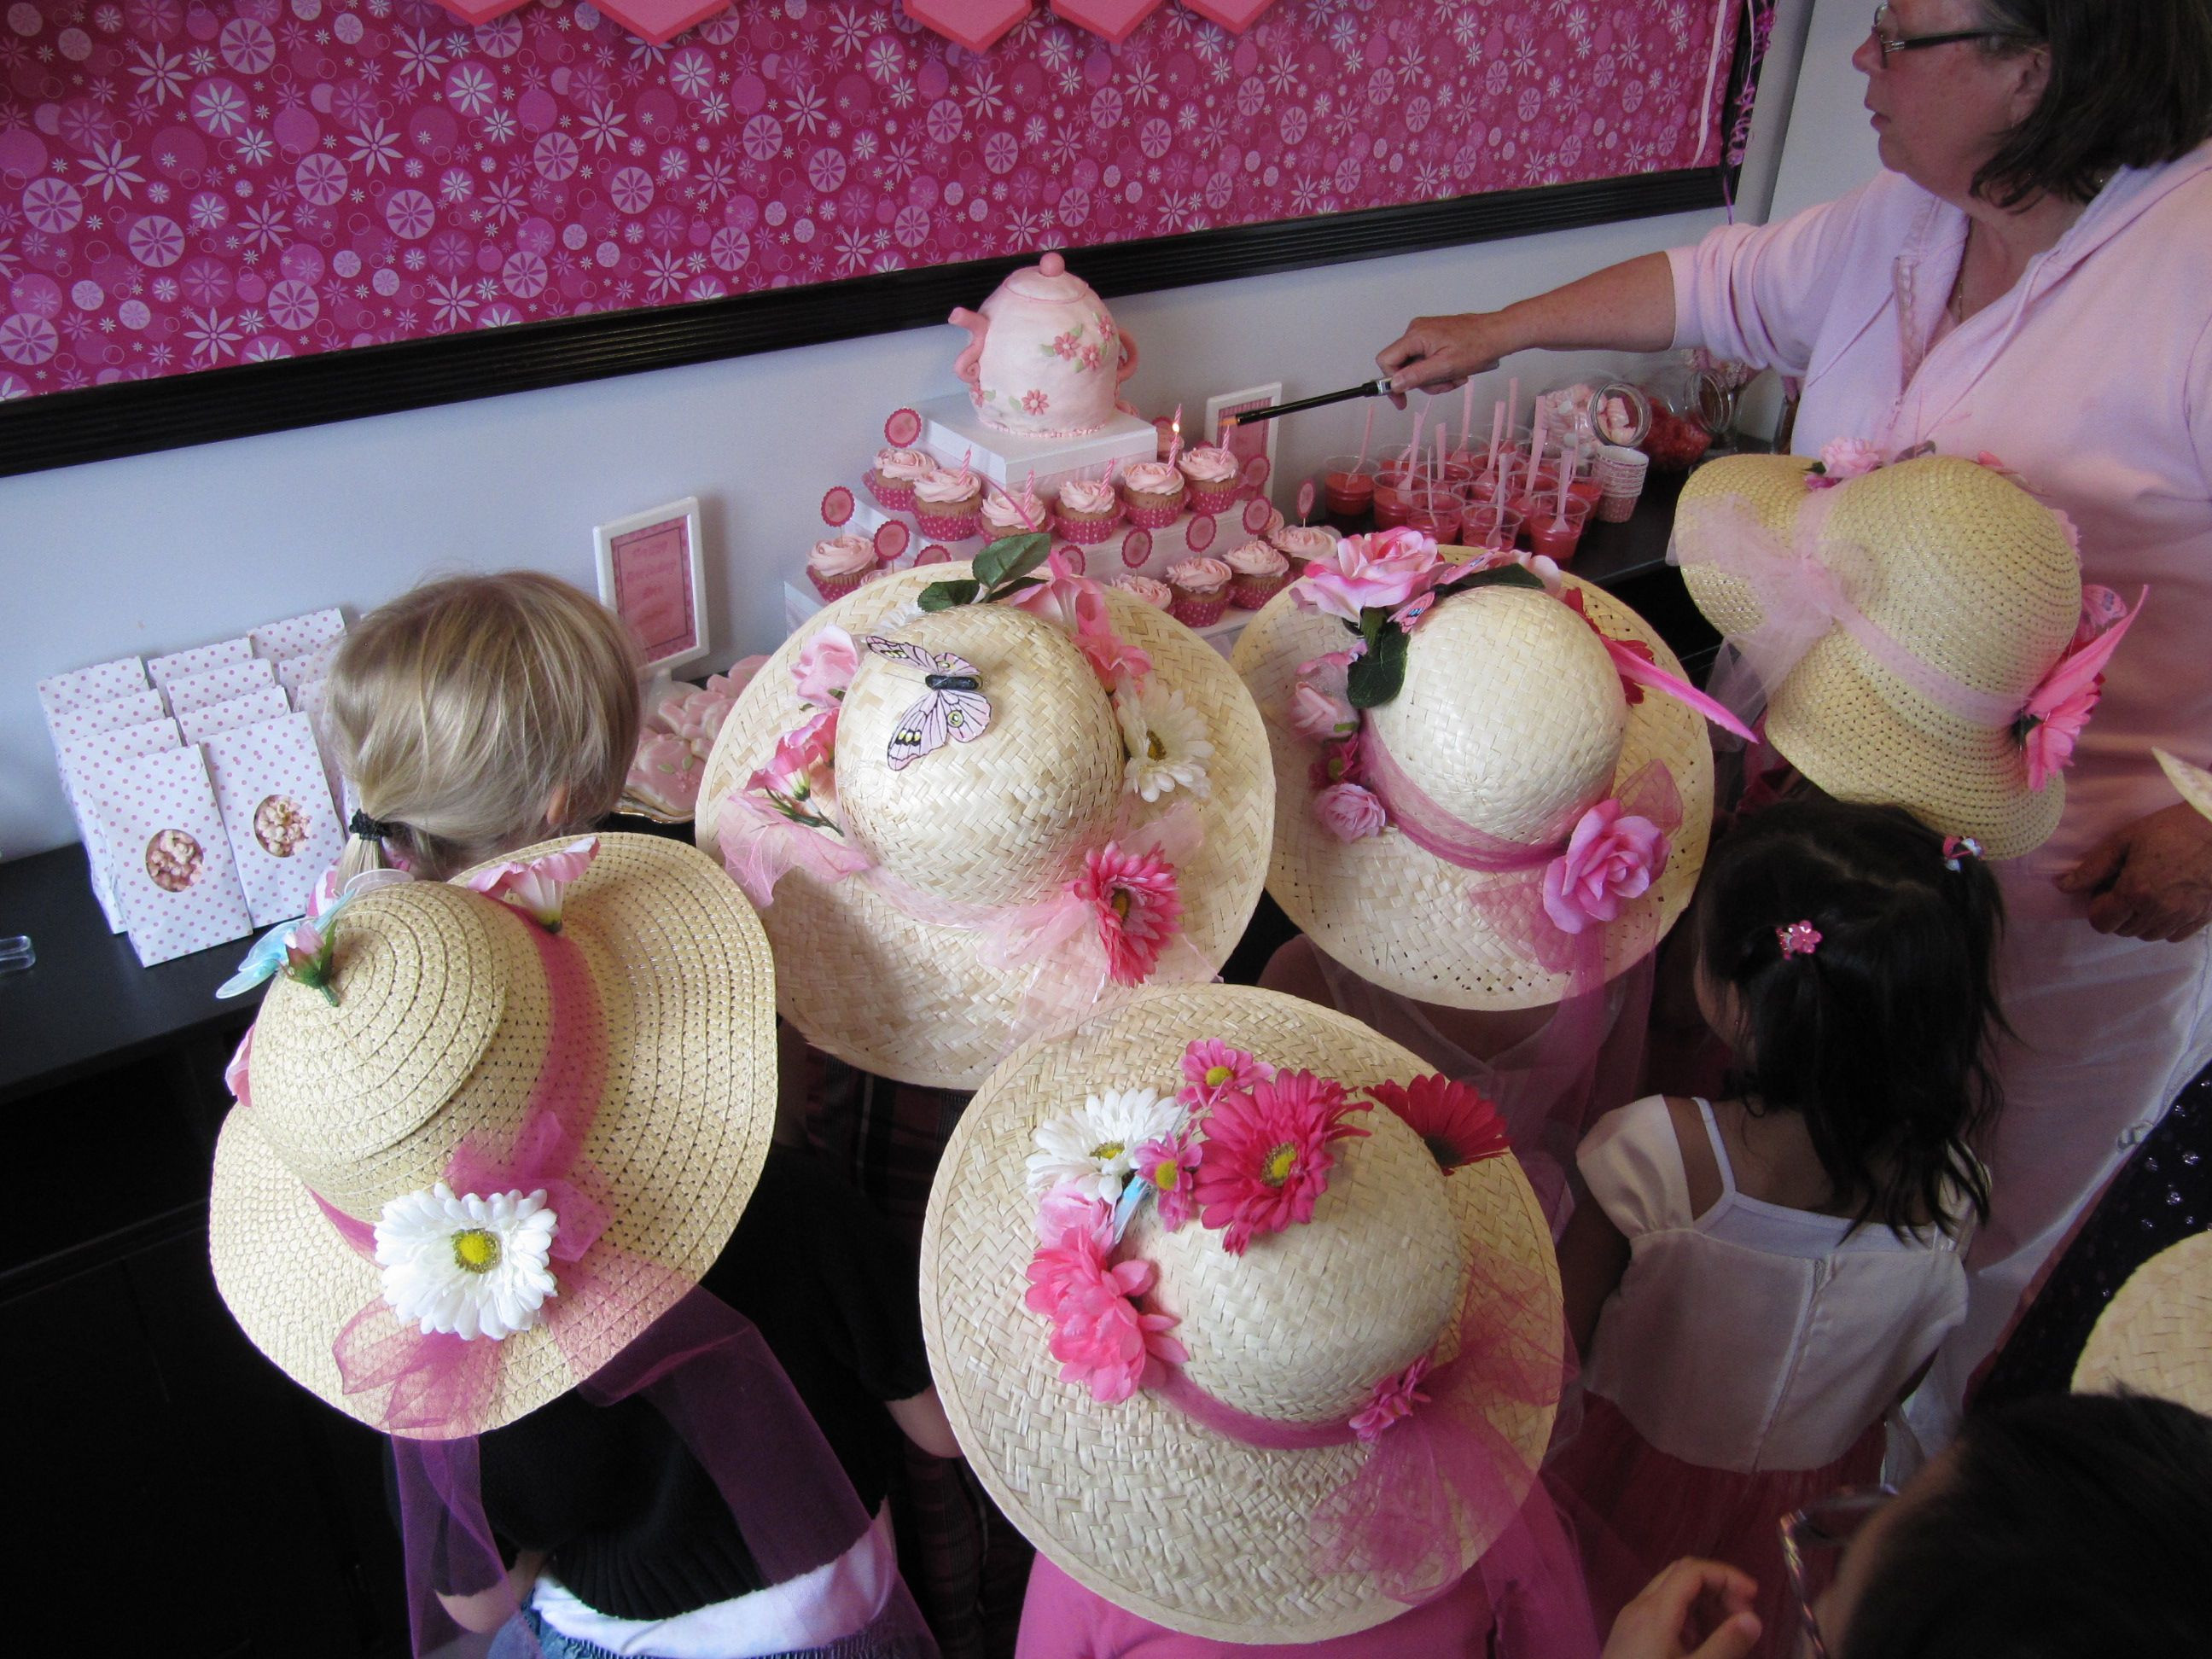 Best ideas about DIY Party Hats For Adults . Save or Pin fake flowers glue gun = cute DIY tea party hats Now.